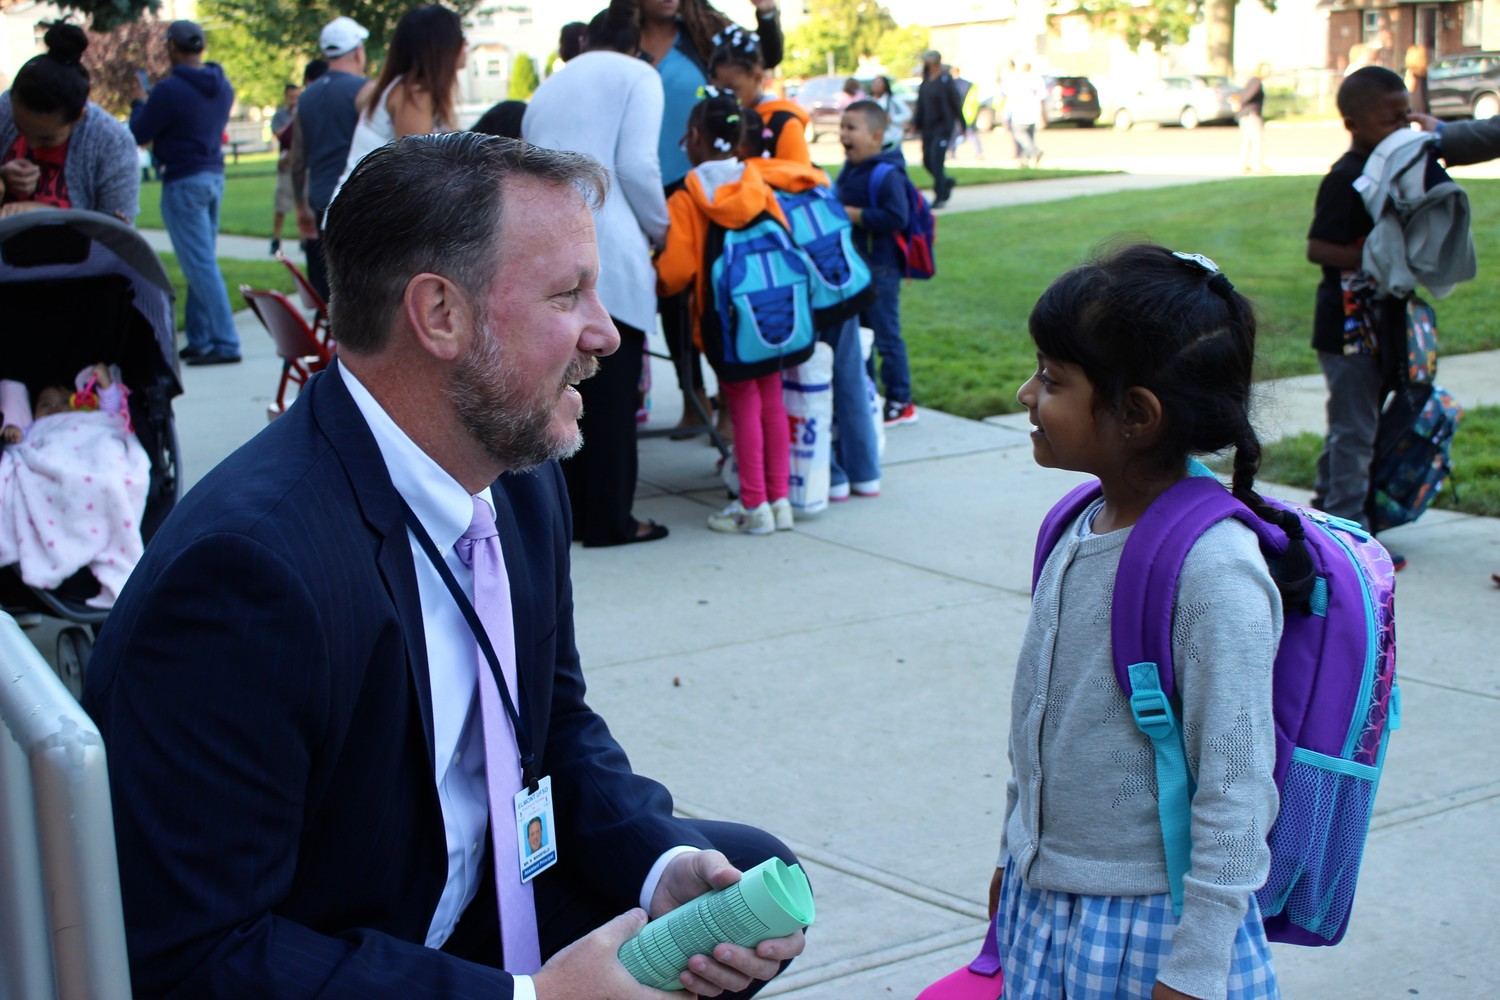 Clara H. Carlson's Assistant Principal Richard Mansfield was on hand to greet students, such as pre-K student Olivia Samaroo.